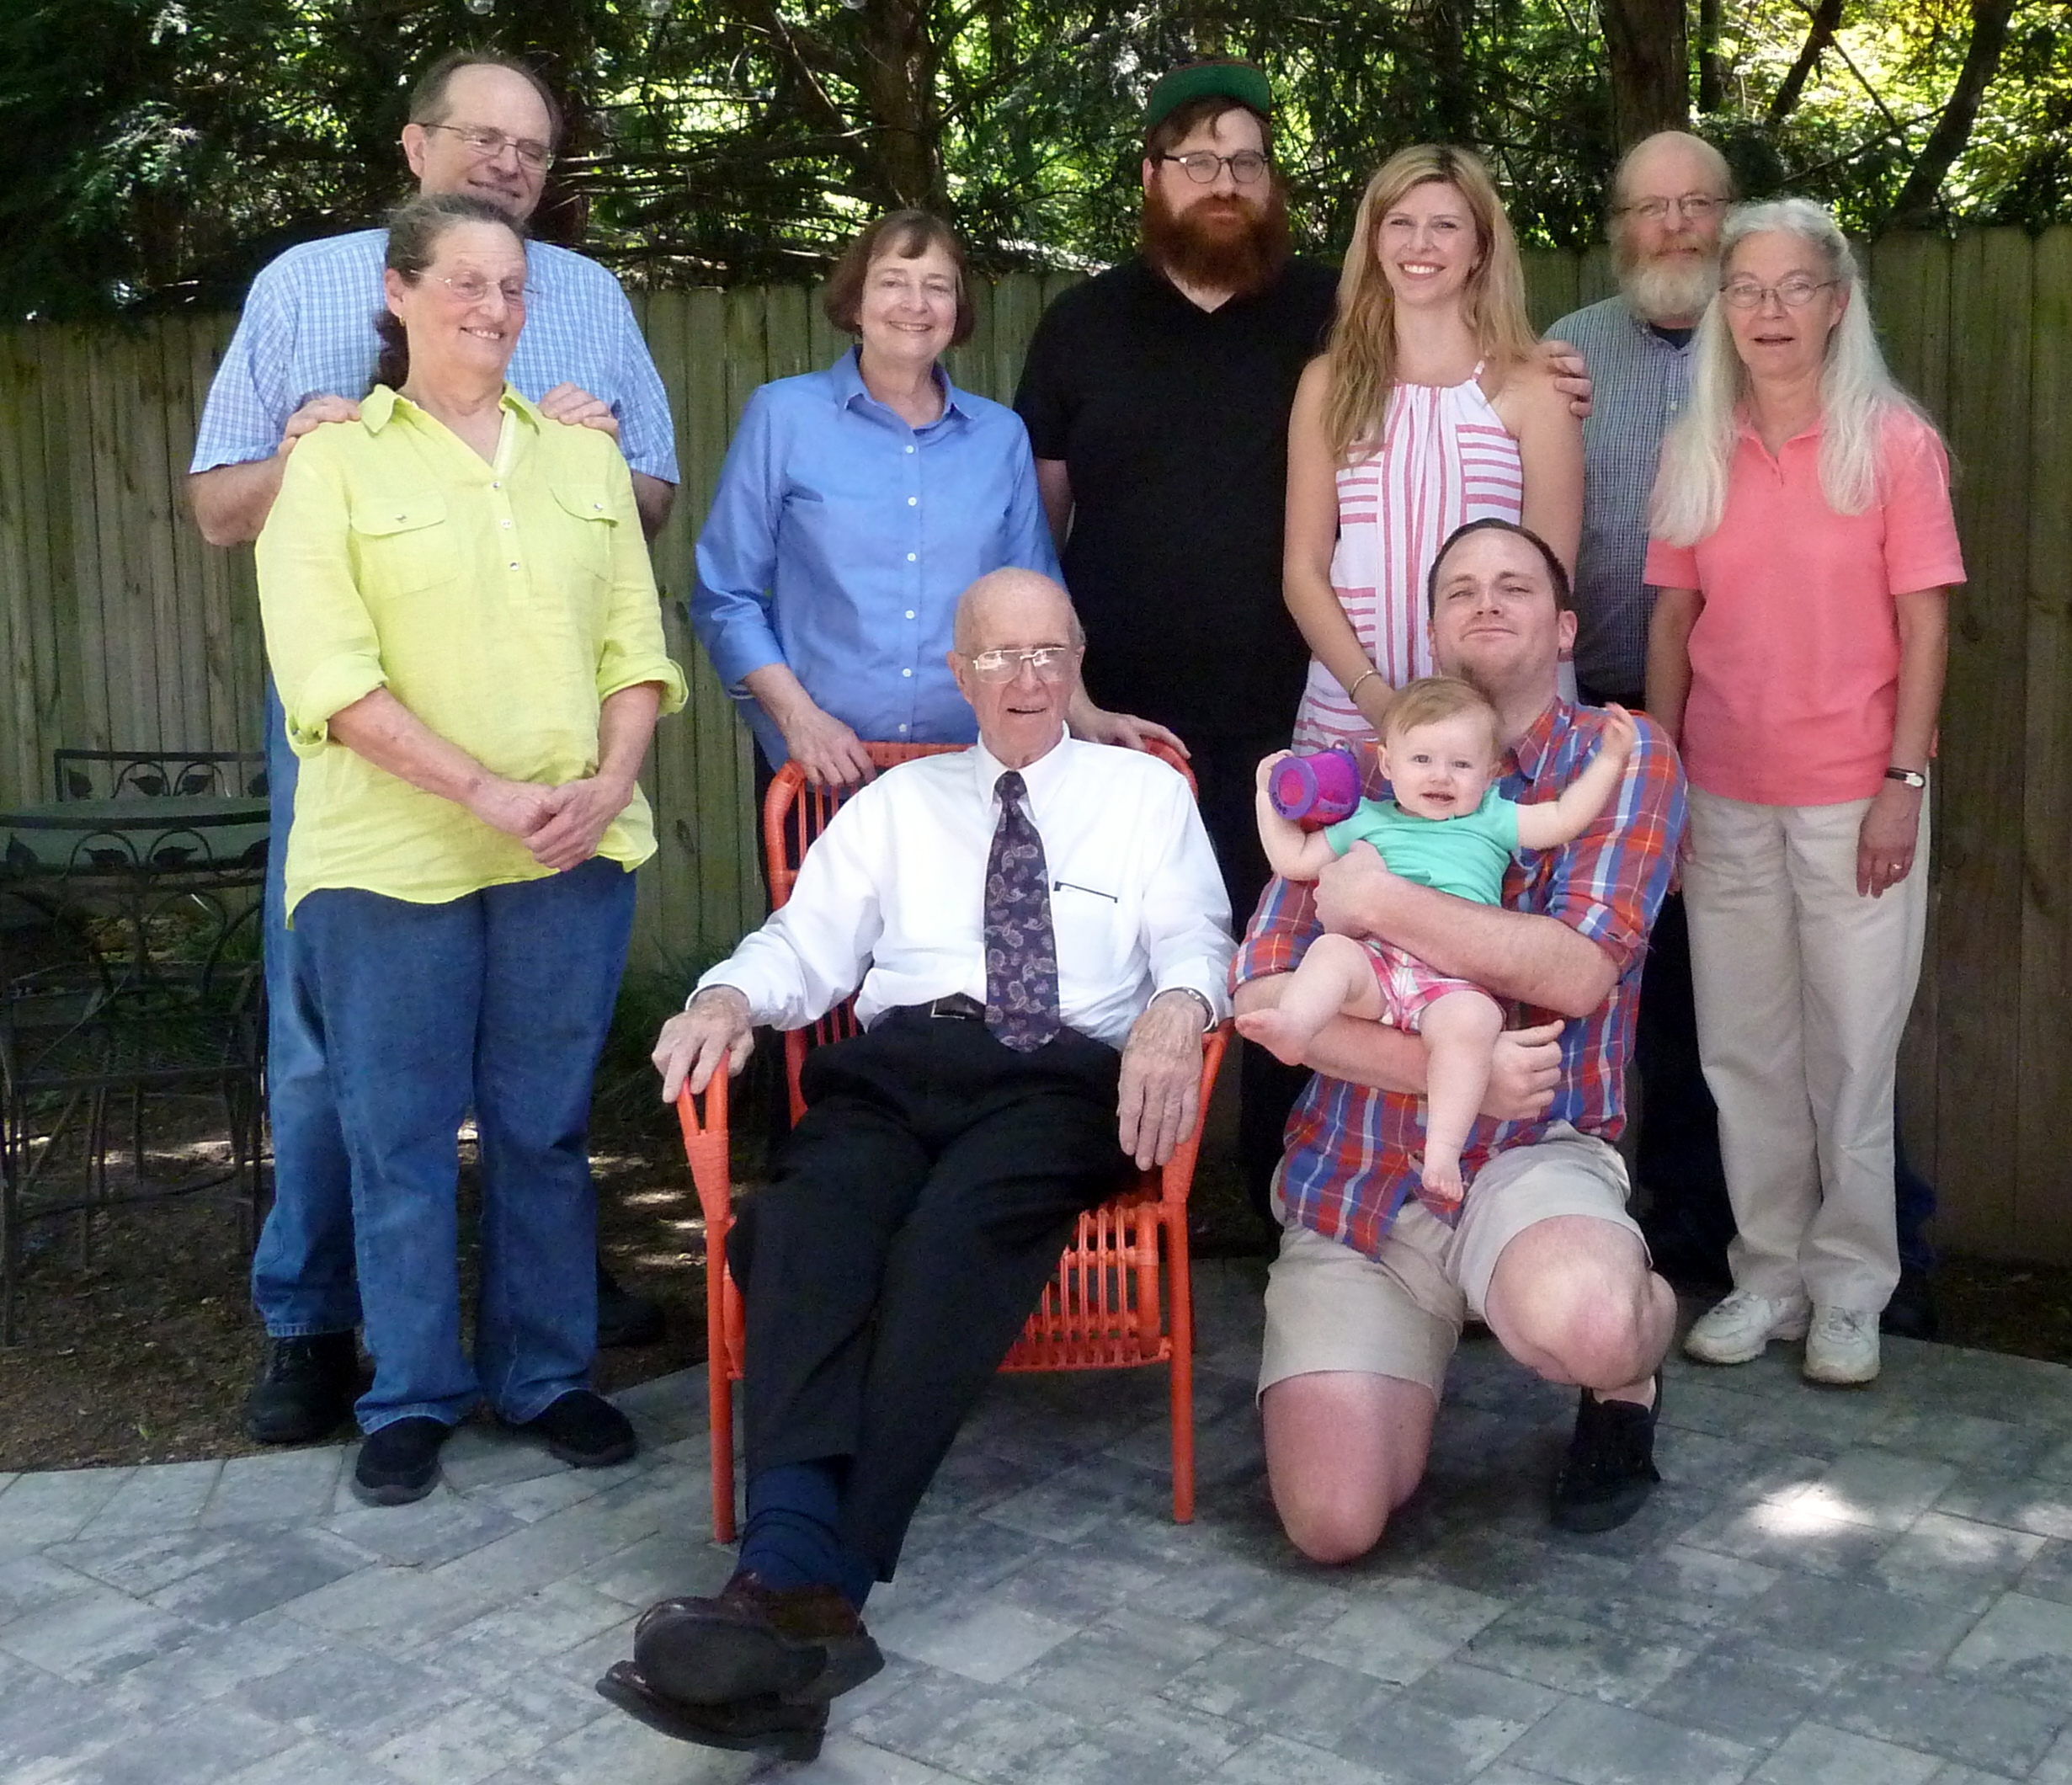 """(Left to Right) Charles """"Chuck"""" Green Jr., Leslie Green, Deborah Green, Charles Green Sr. (yup that's Charlie), Robert Green and his wife Christina, Jeff Green and his niece Olive, Clarke Green, Teddi Barclay."""